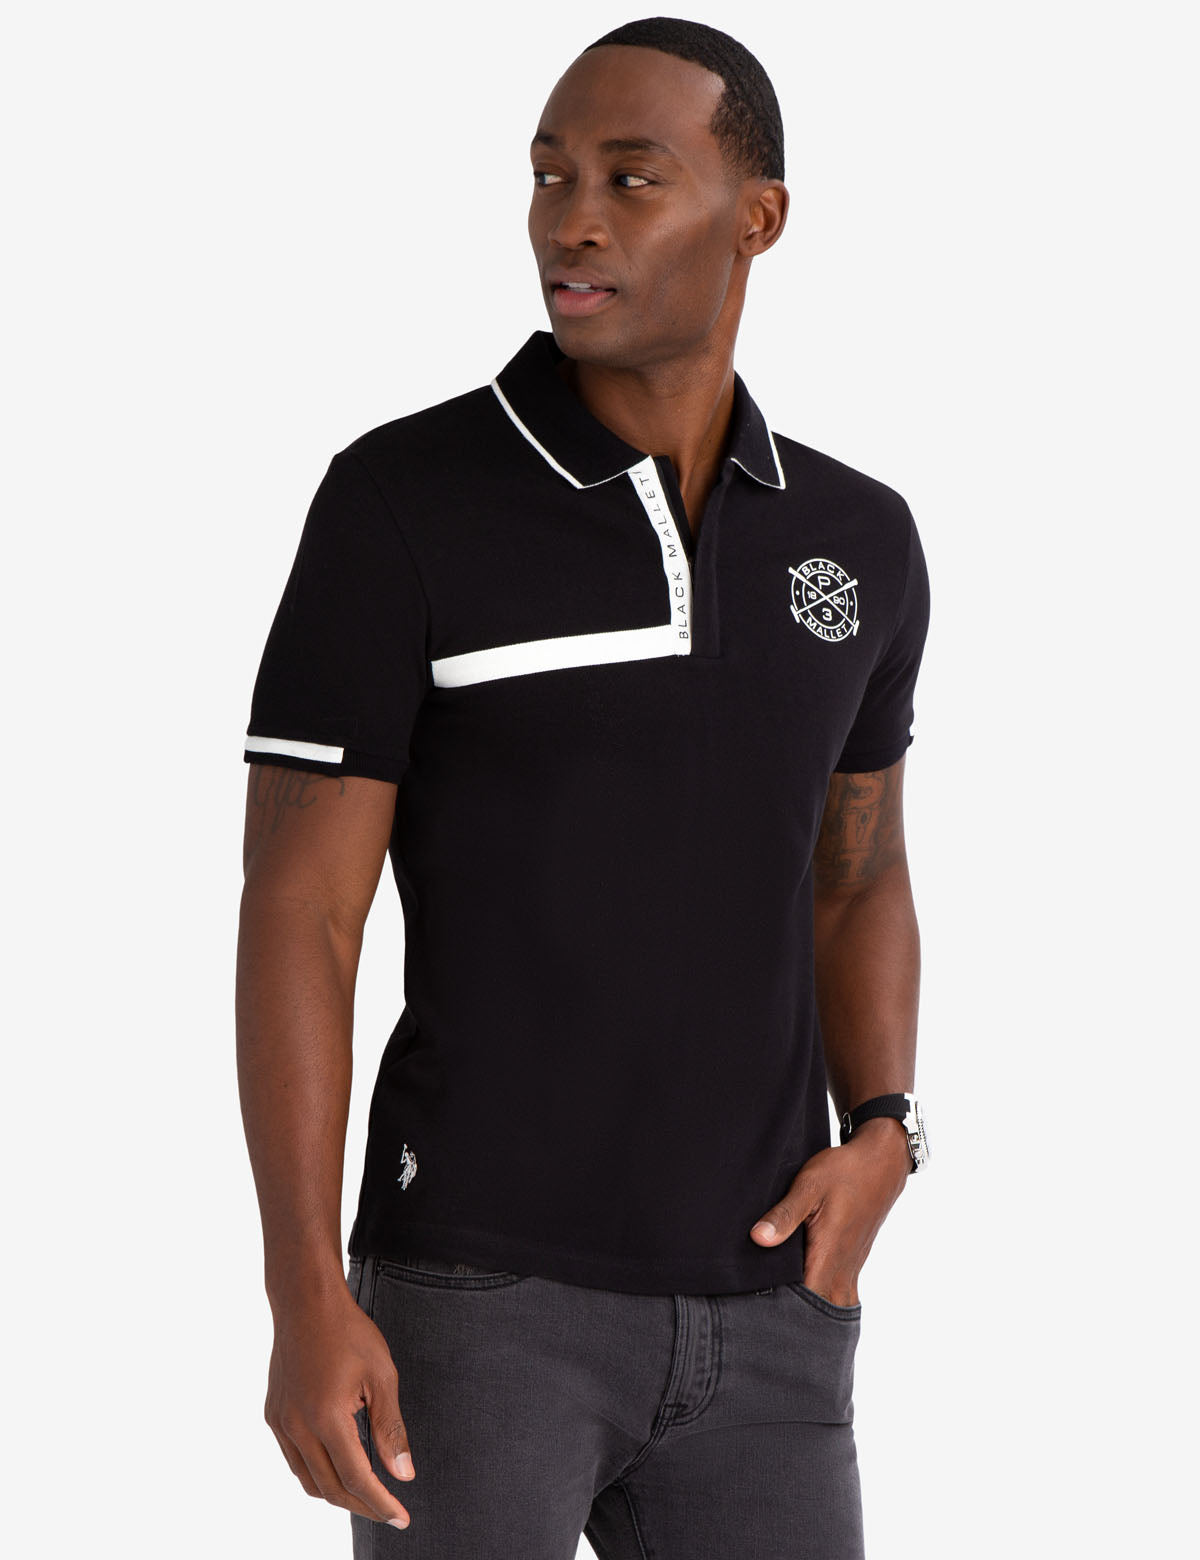 BLACK MALLET SLIM FIT ZIPPER POLO SHIRT